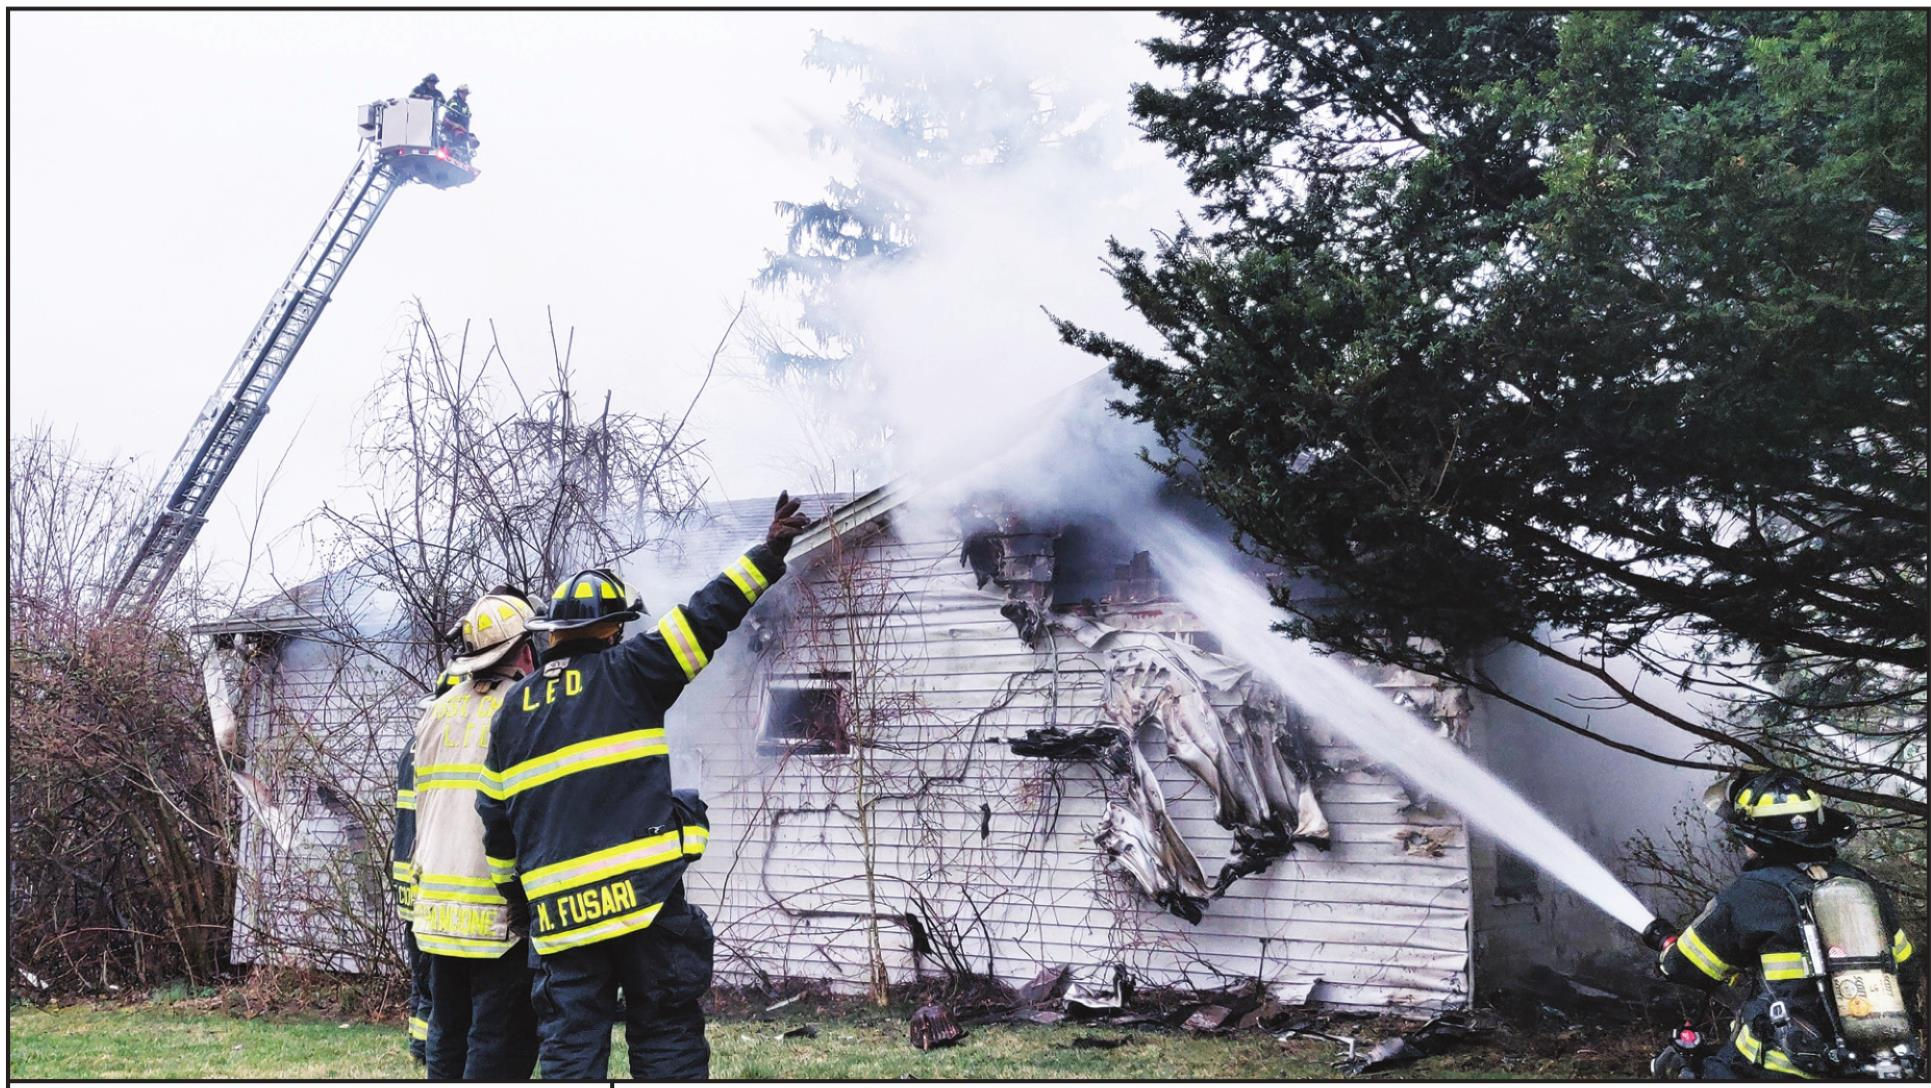 VACANT HOUSE DAMAGED BY FIRE